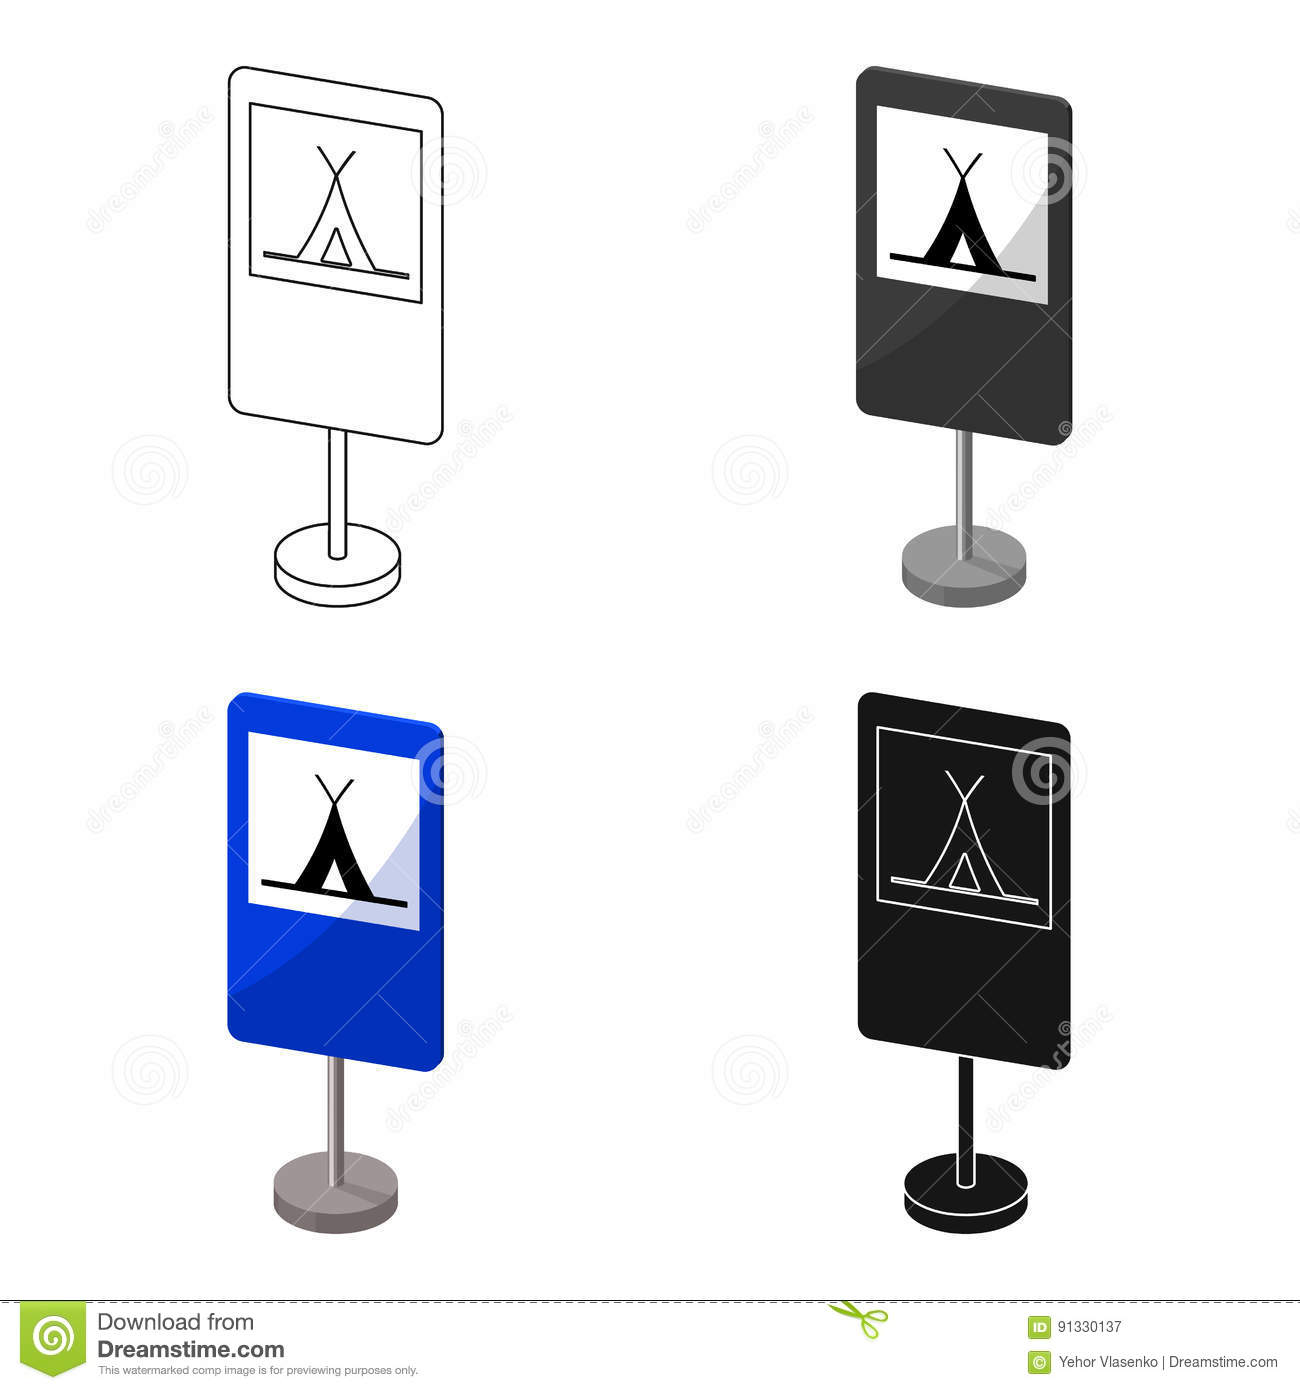 guide road sign icon in cartoon style isolated on white